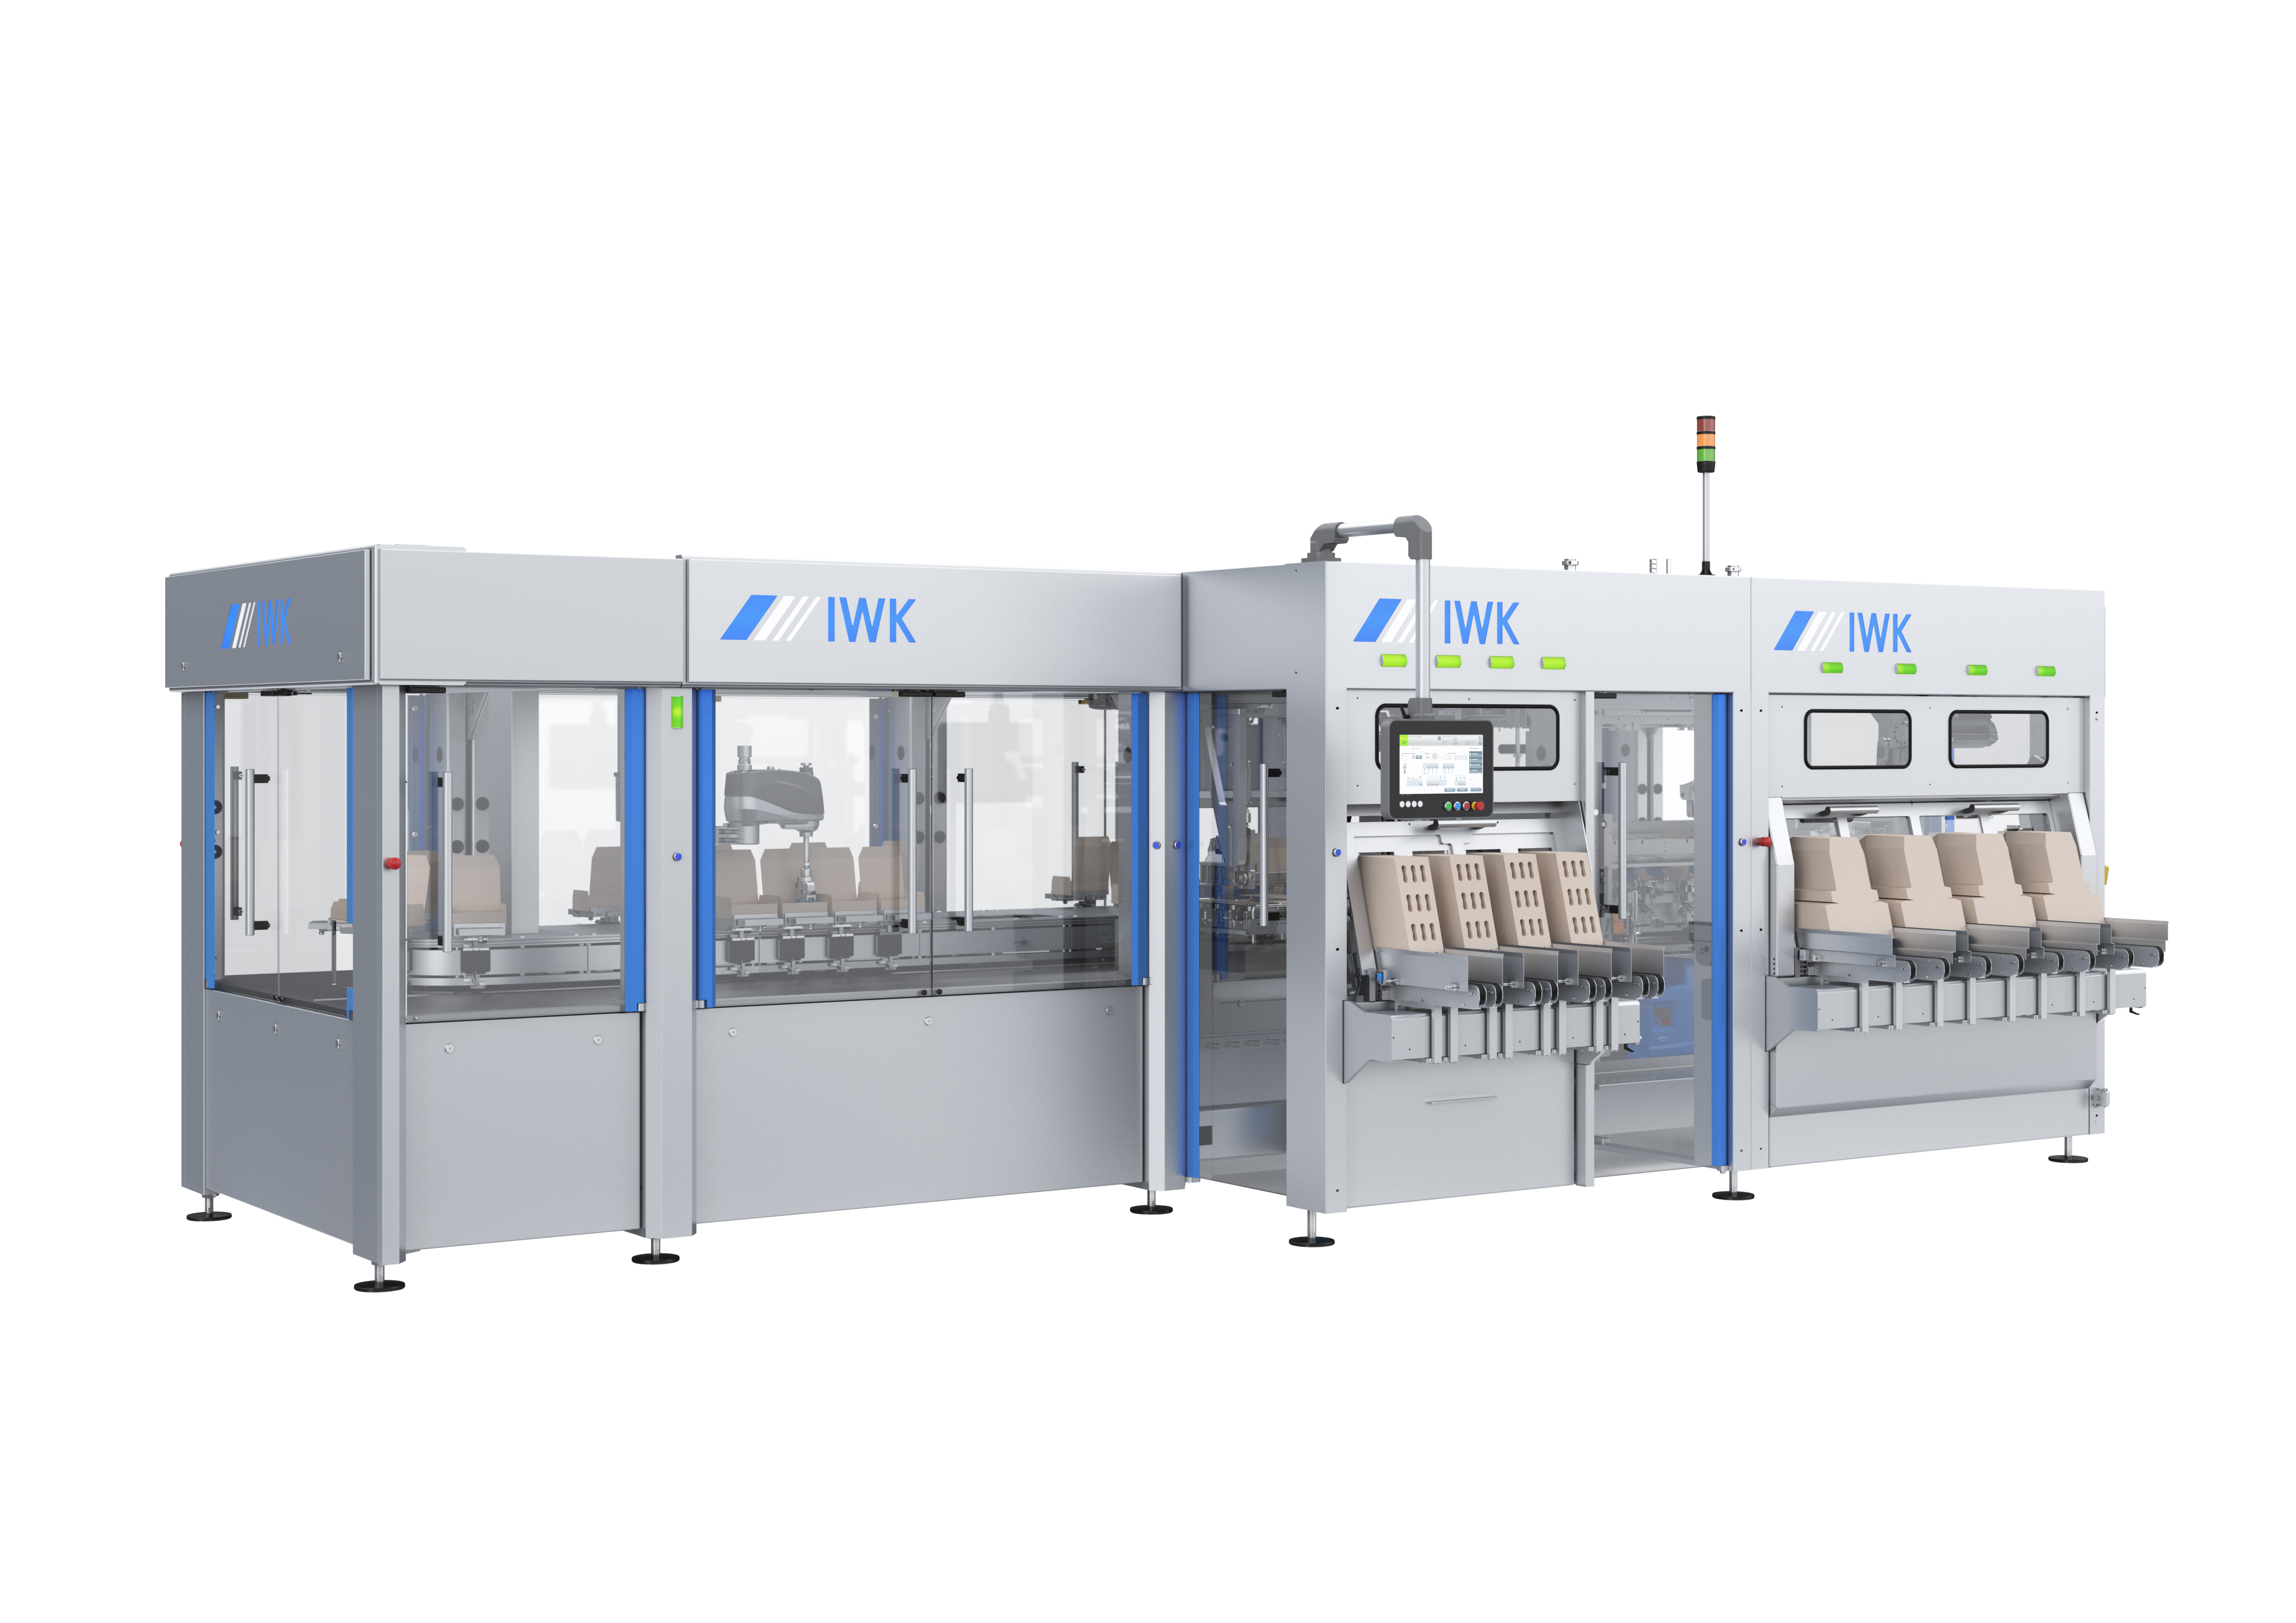 IWK Introduces Modular, High-Speed Top-load  Cartoning Line for Prefilled Syringes, Vials  & Other Fragile Pharma Containers